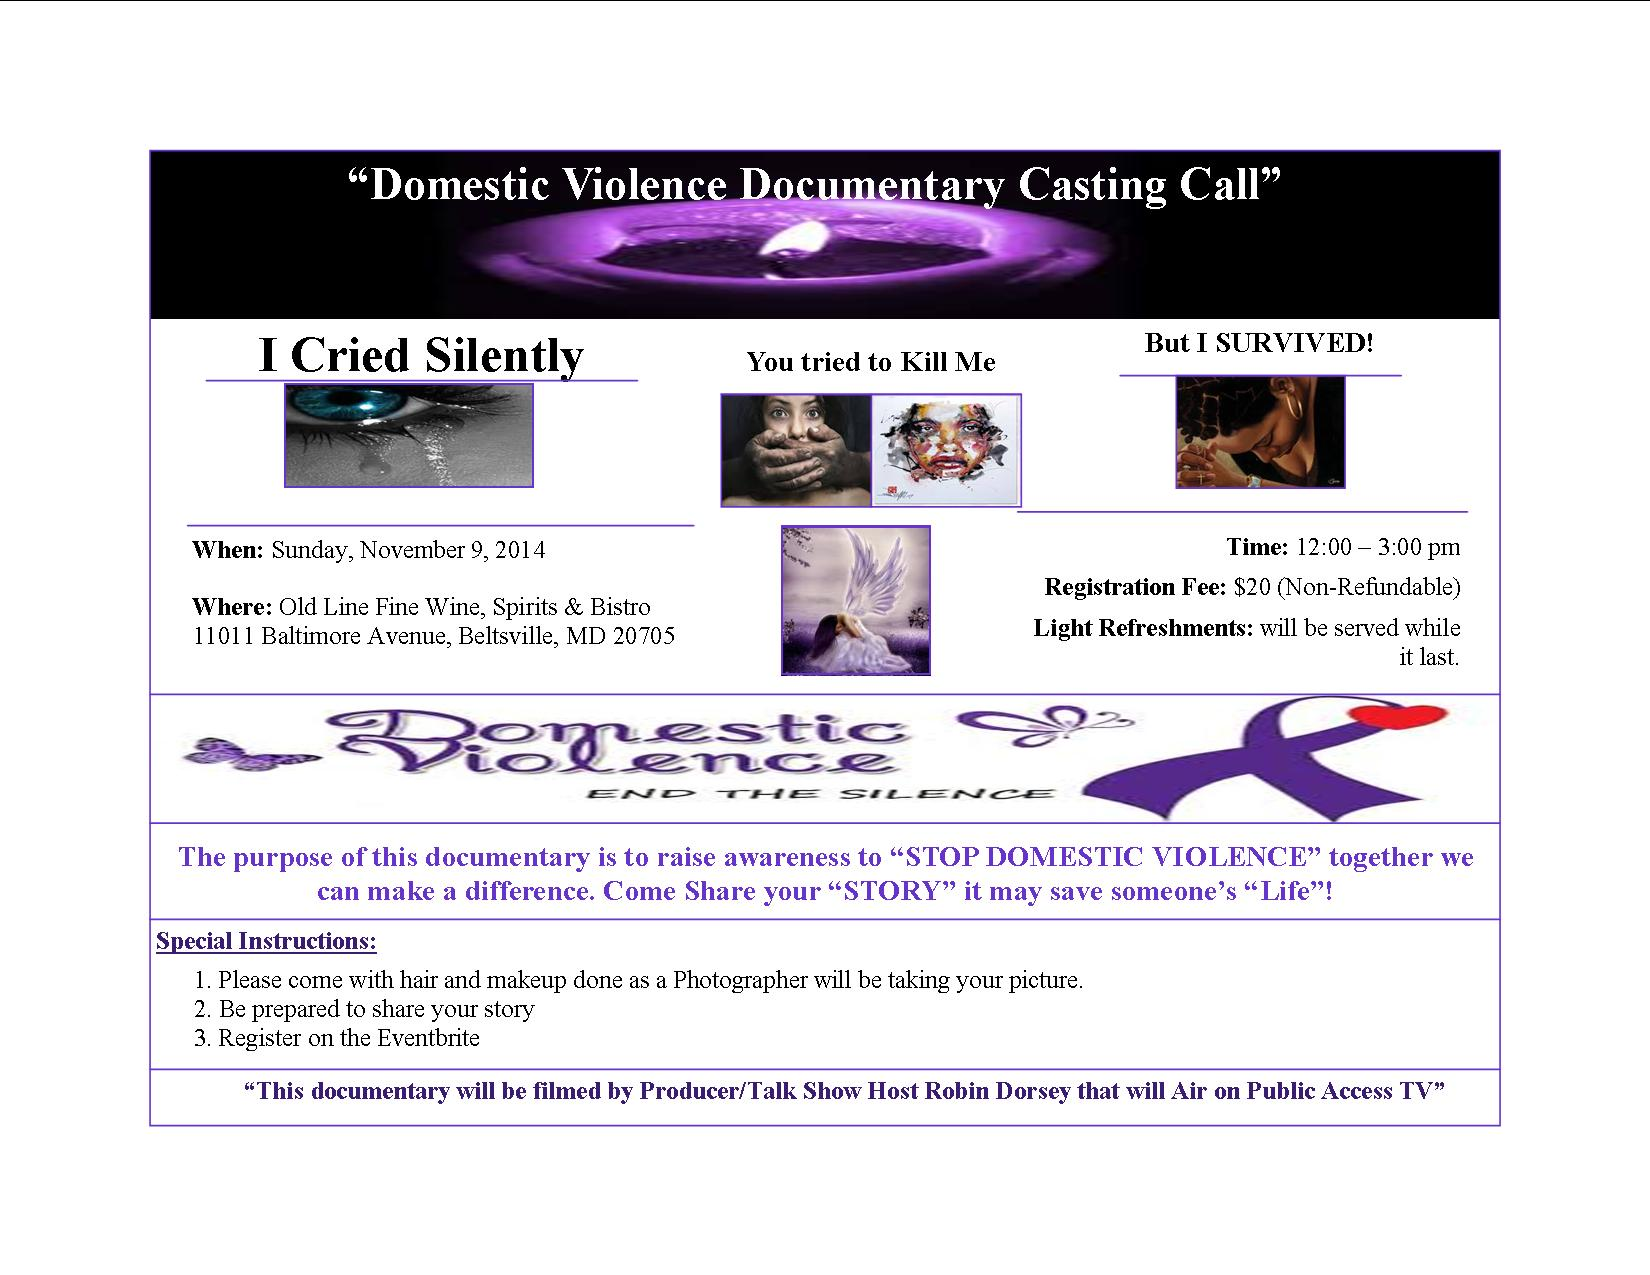 Domestic Violence Casting Call 11.9.14